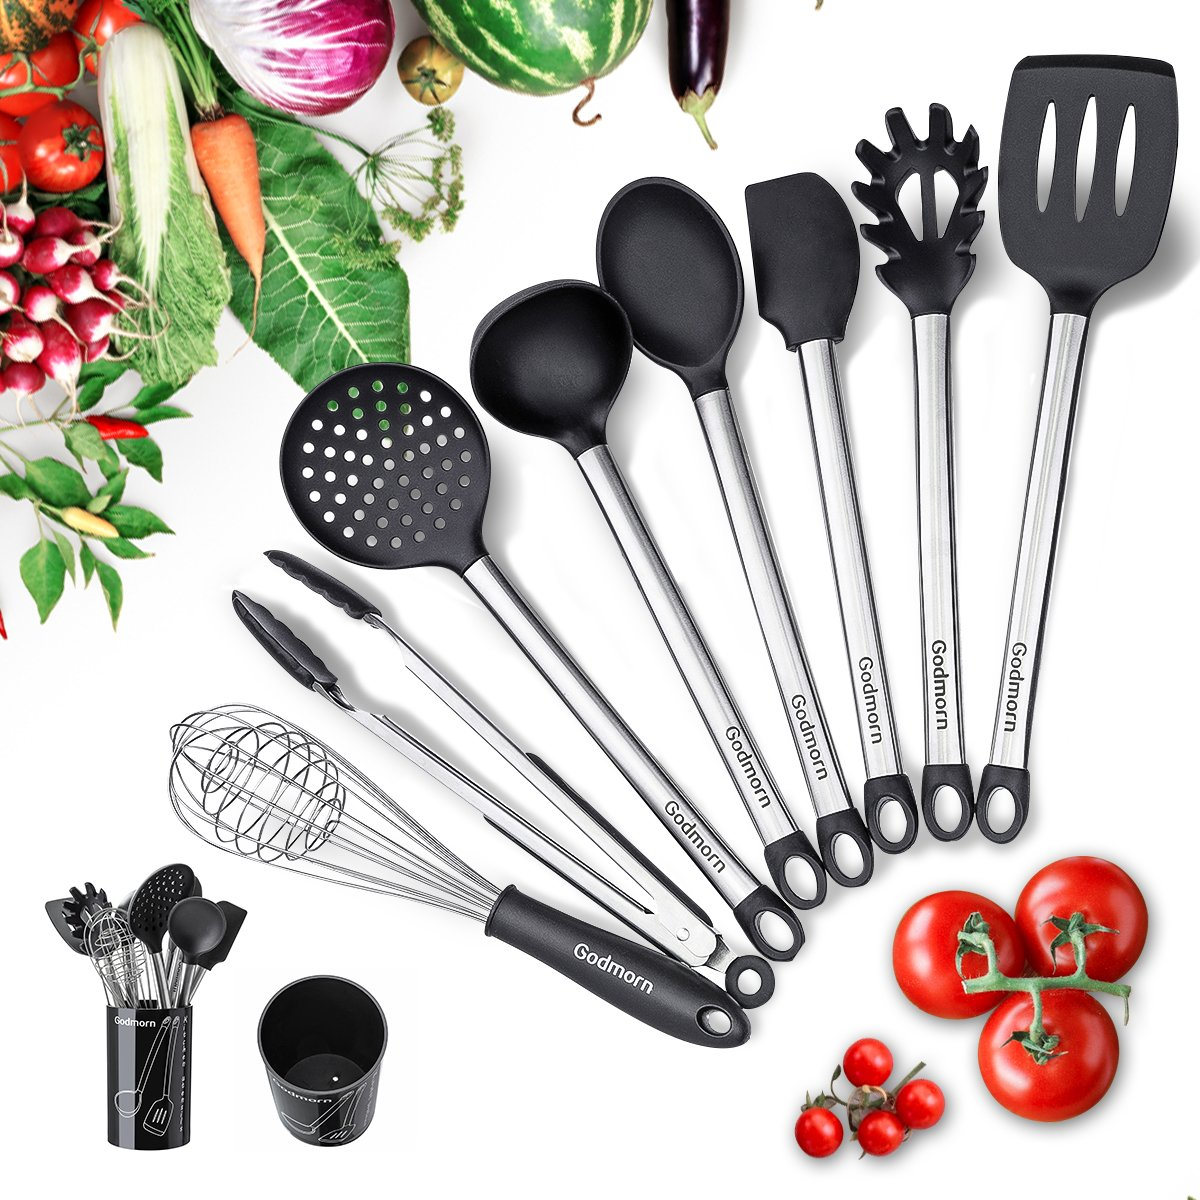 Godmorn Kitchen Utensils,Kitchen Utensil Set 9 Pcs, Silicone cookware Nonstick Cooking Tool with Plastic Holder - Silicone & Stainless Steel -For Pots & Pans - Black